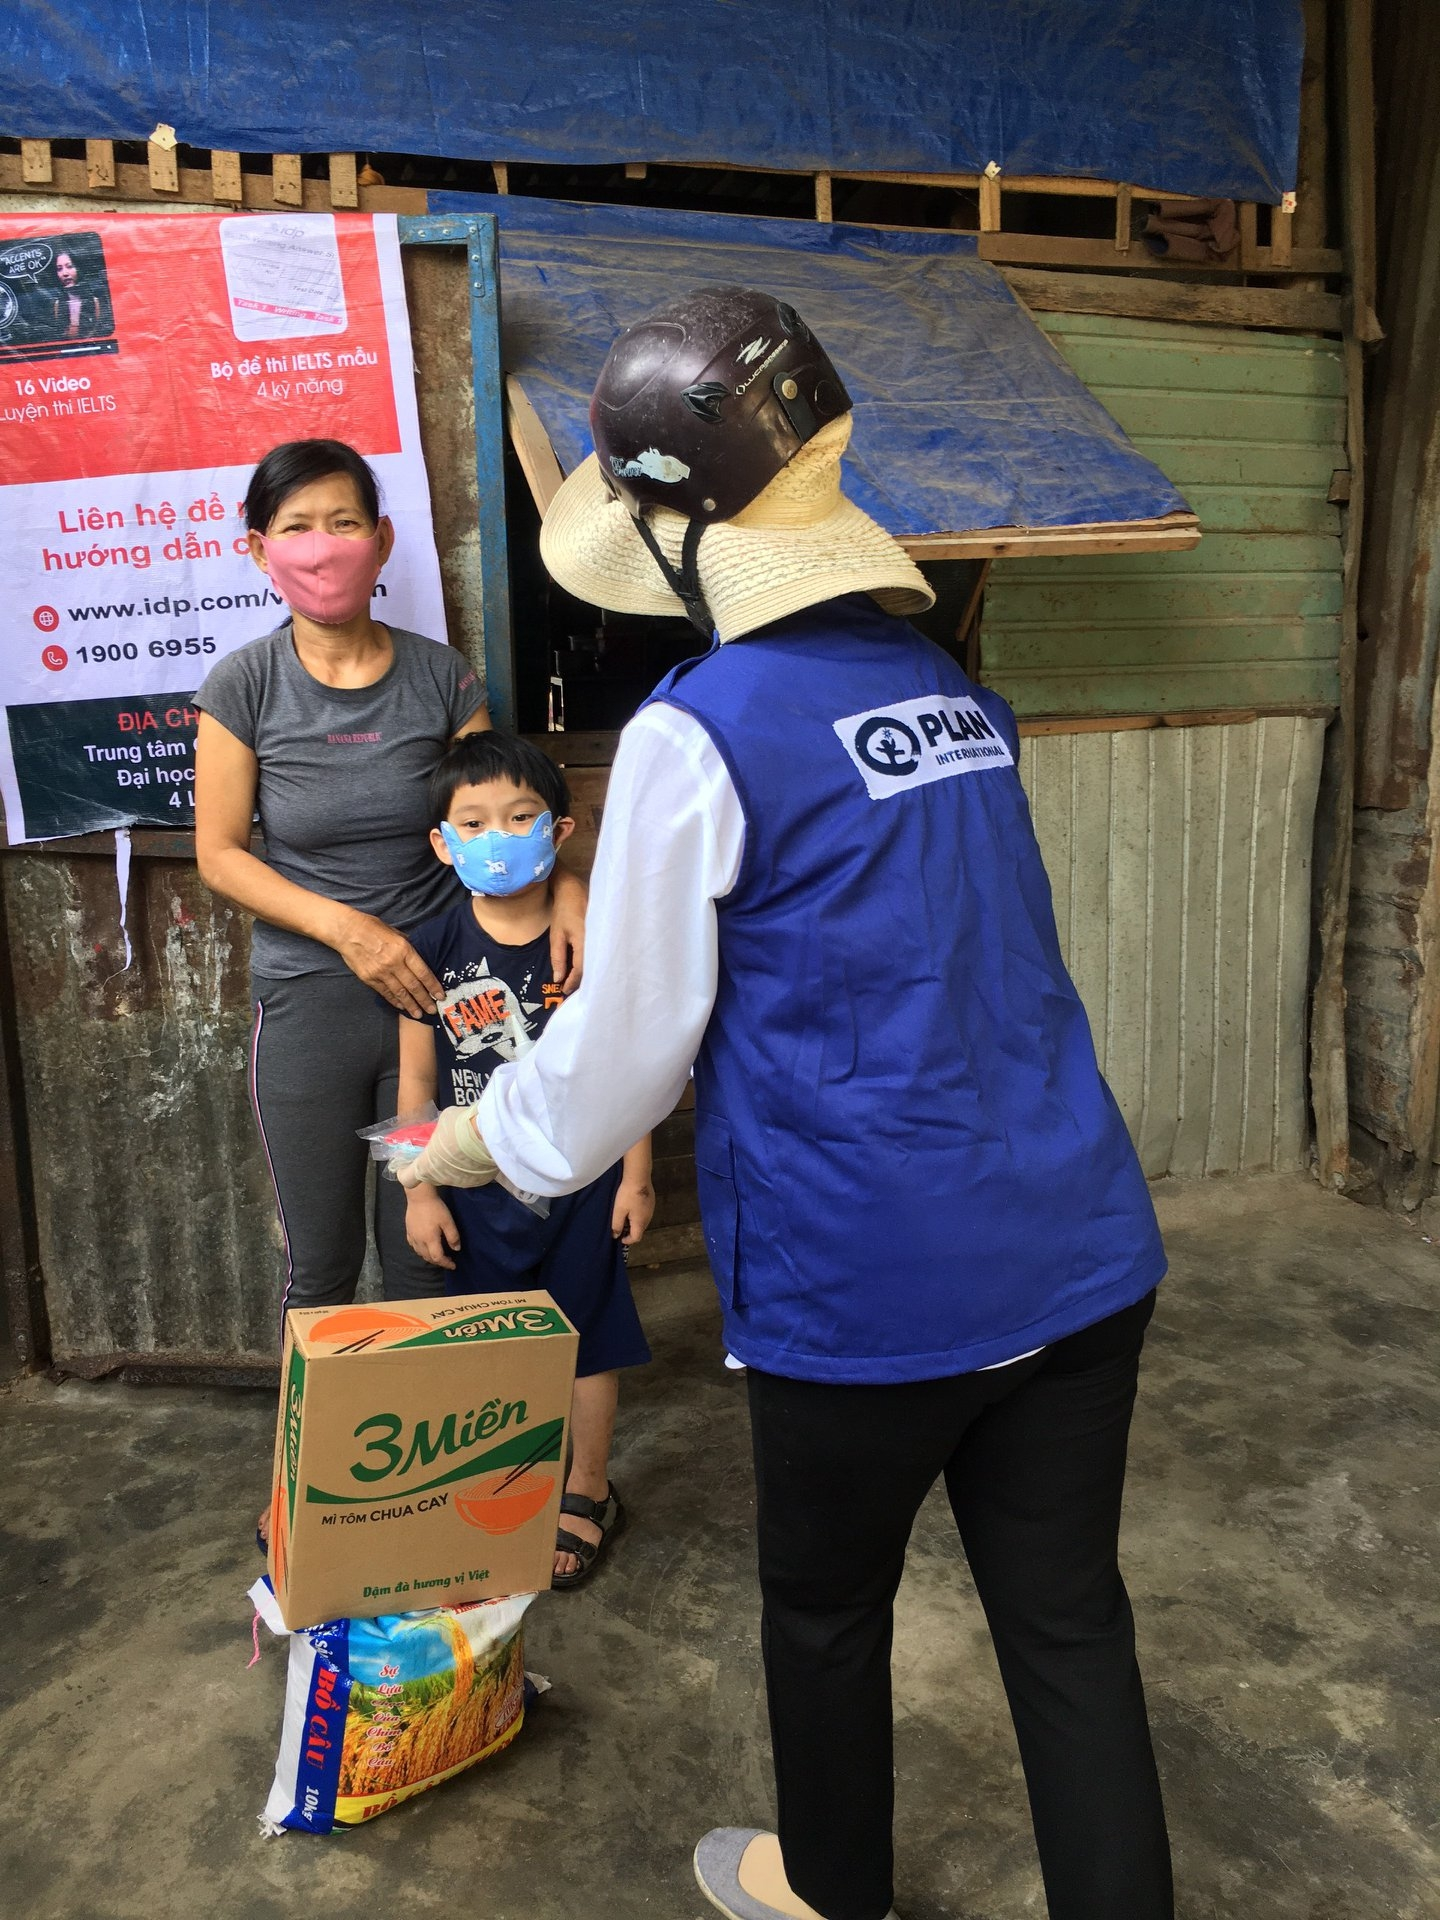 plan international vietnams support package to over 400 families in thua thien hue